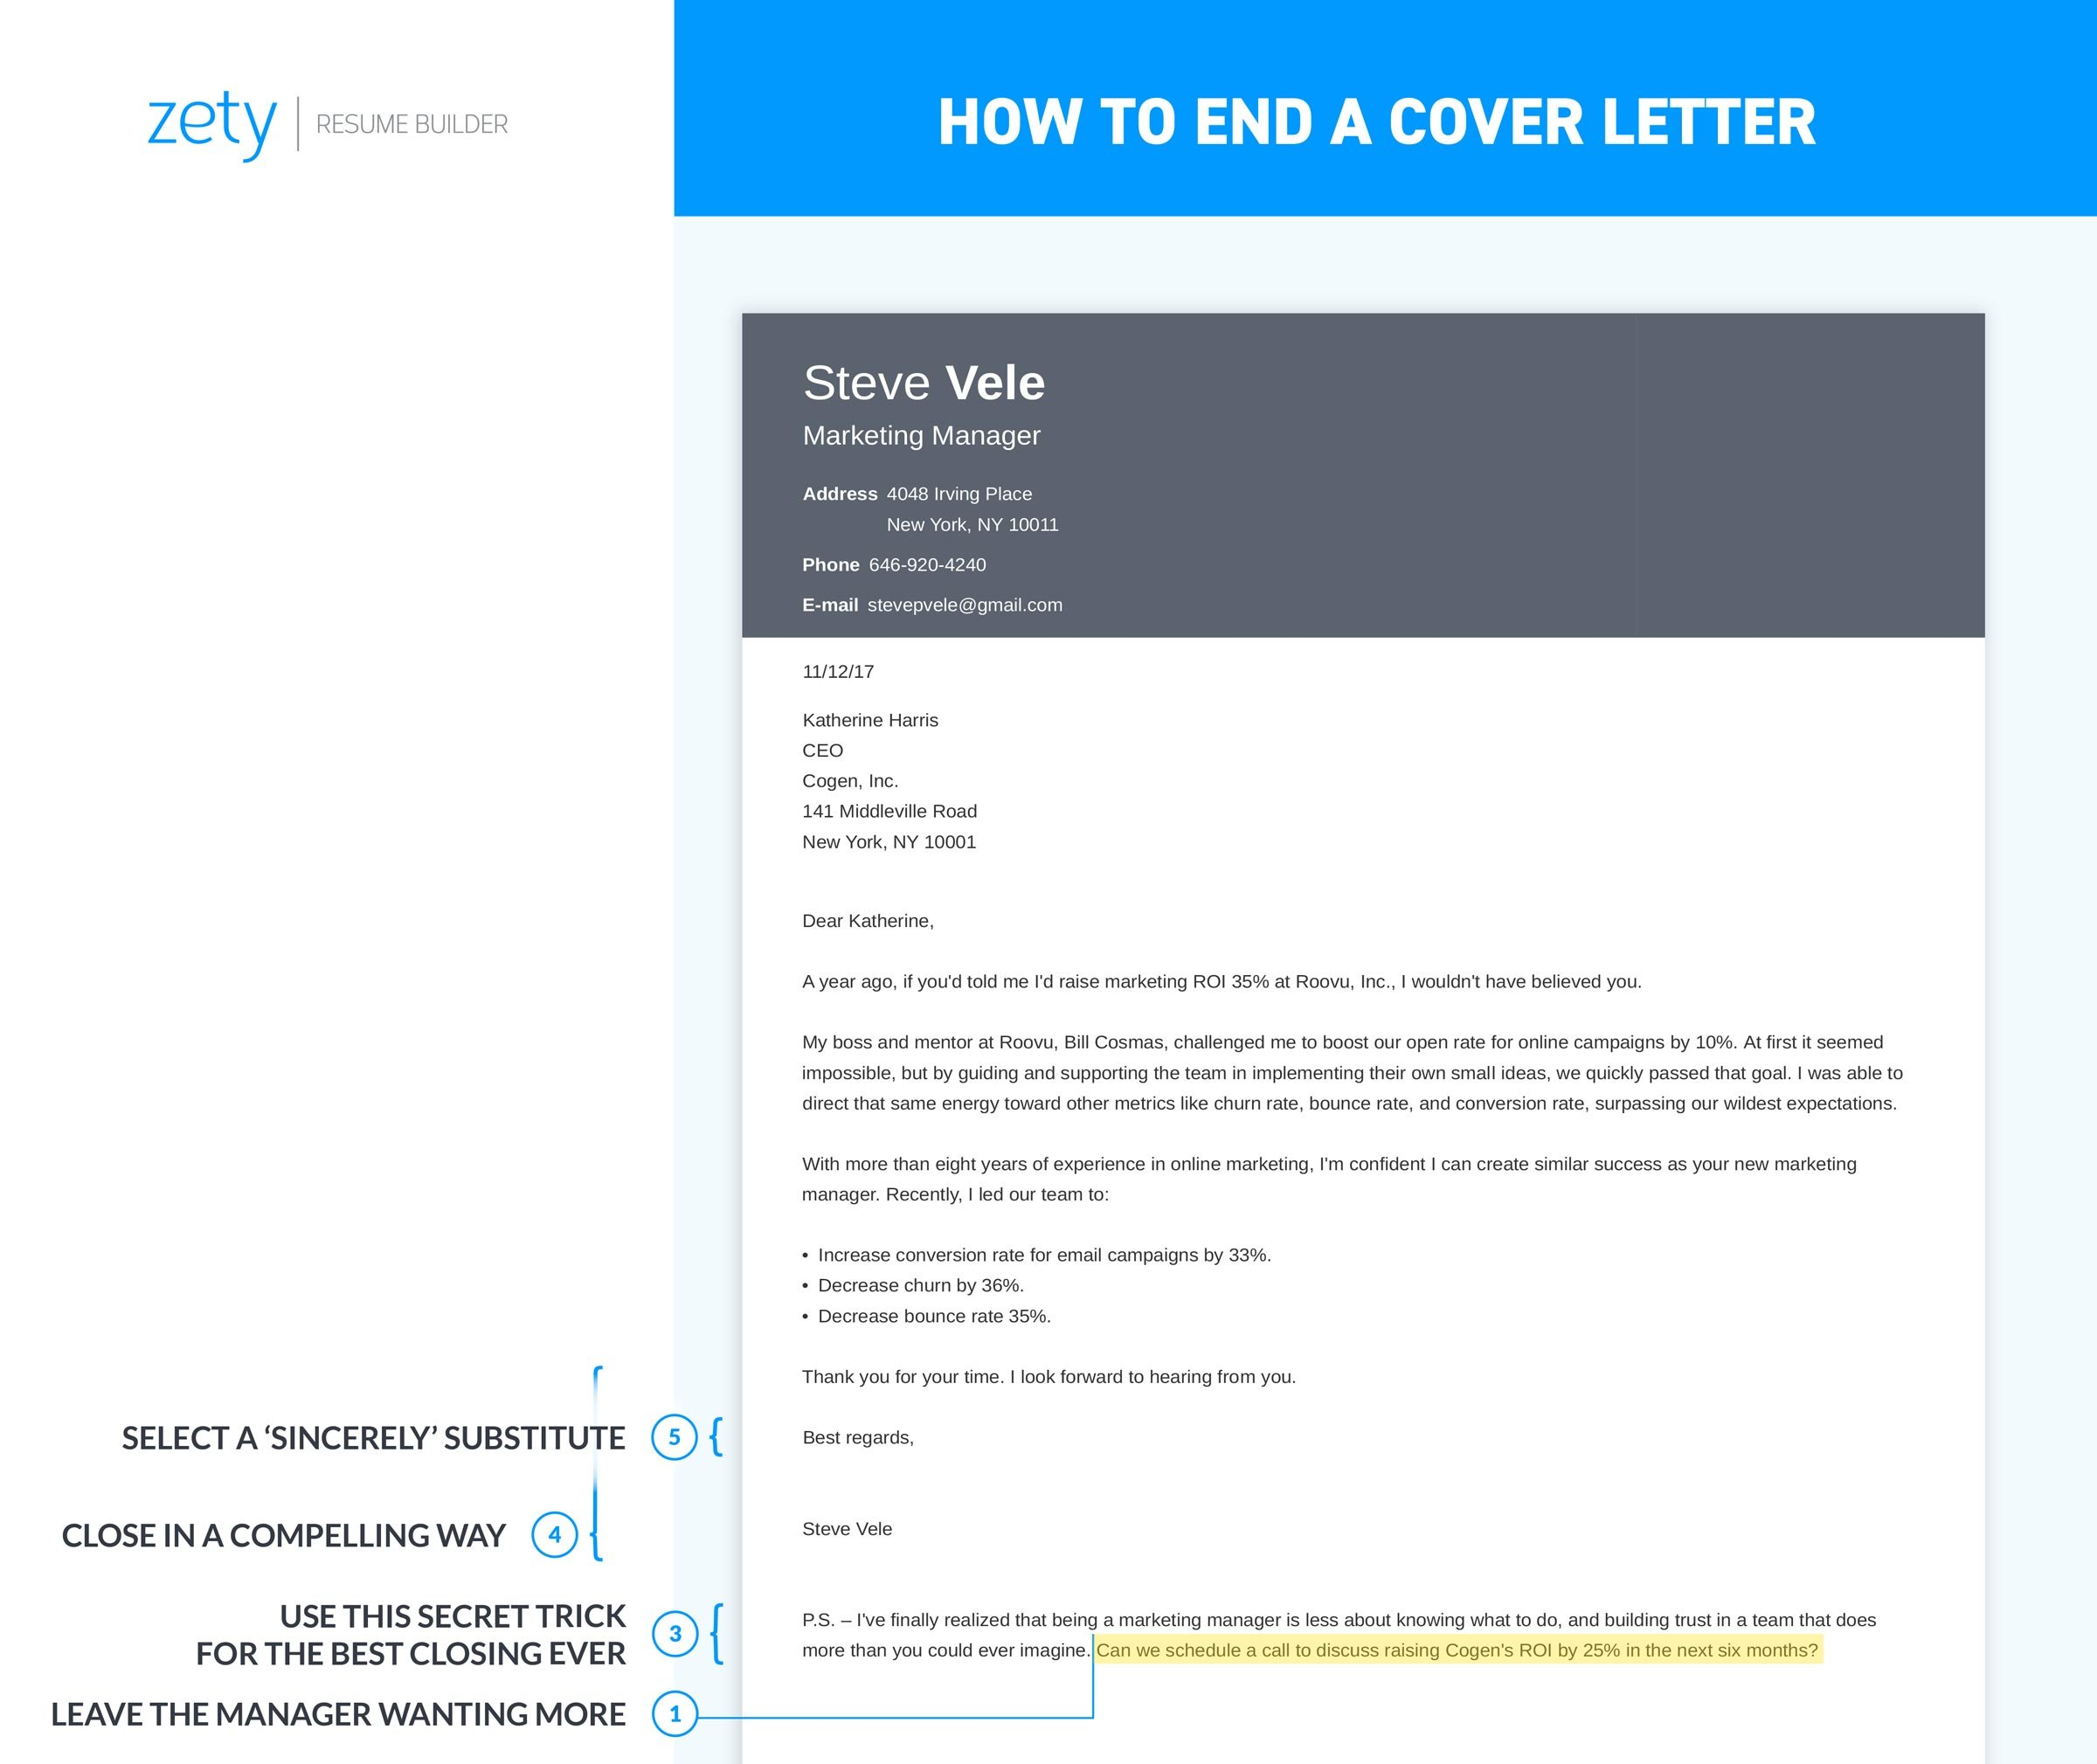 ways to close a letter how to end a cover letter sample amp complete guide 20 25477 | how to end a cover letter 2